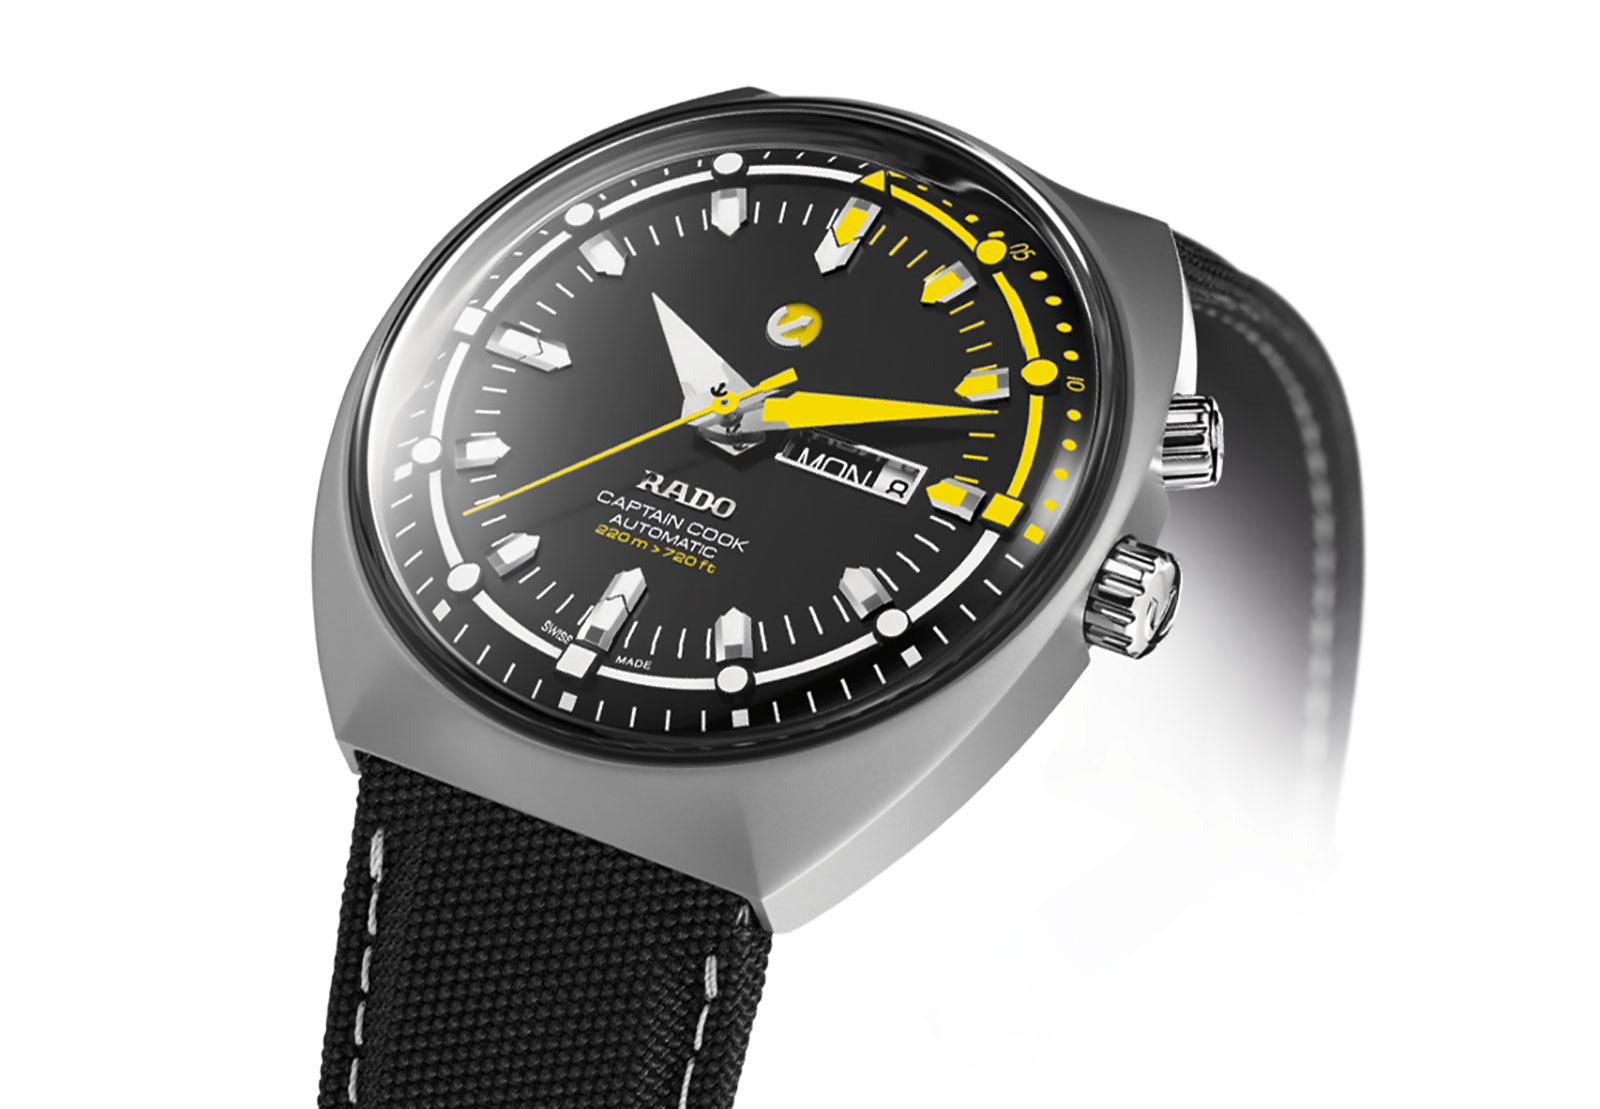 Rado-Tradition-Captain-Cook-MK-1.jpg